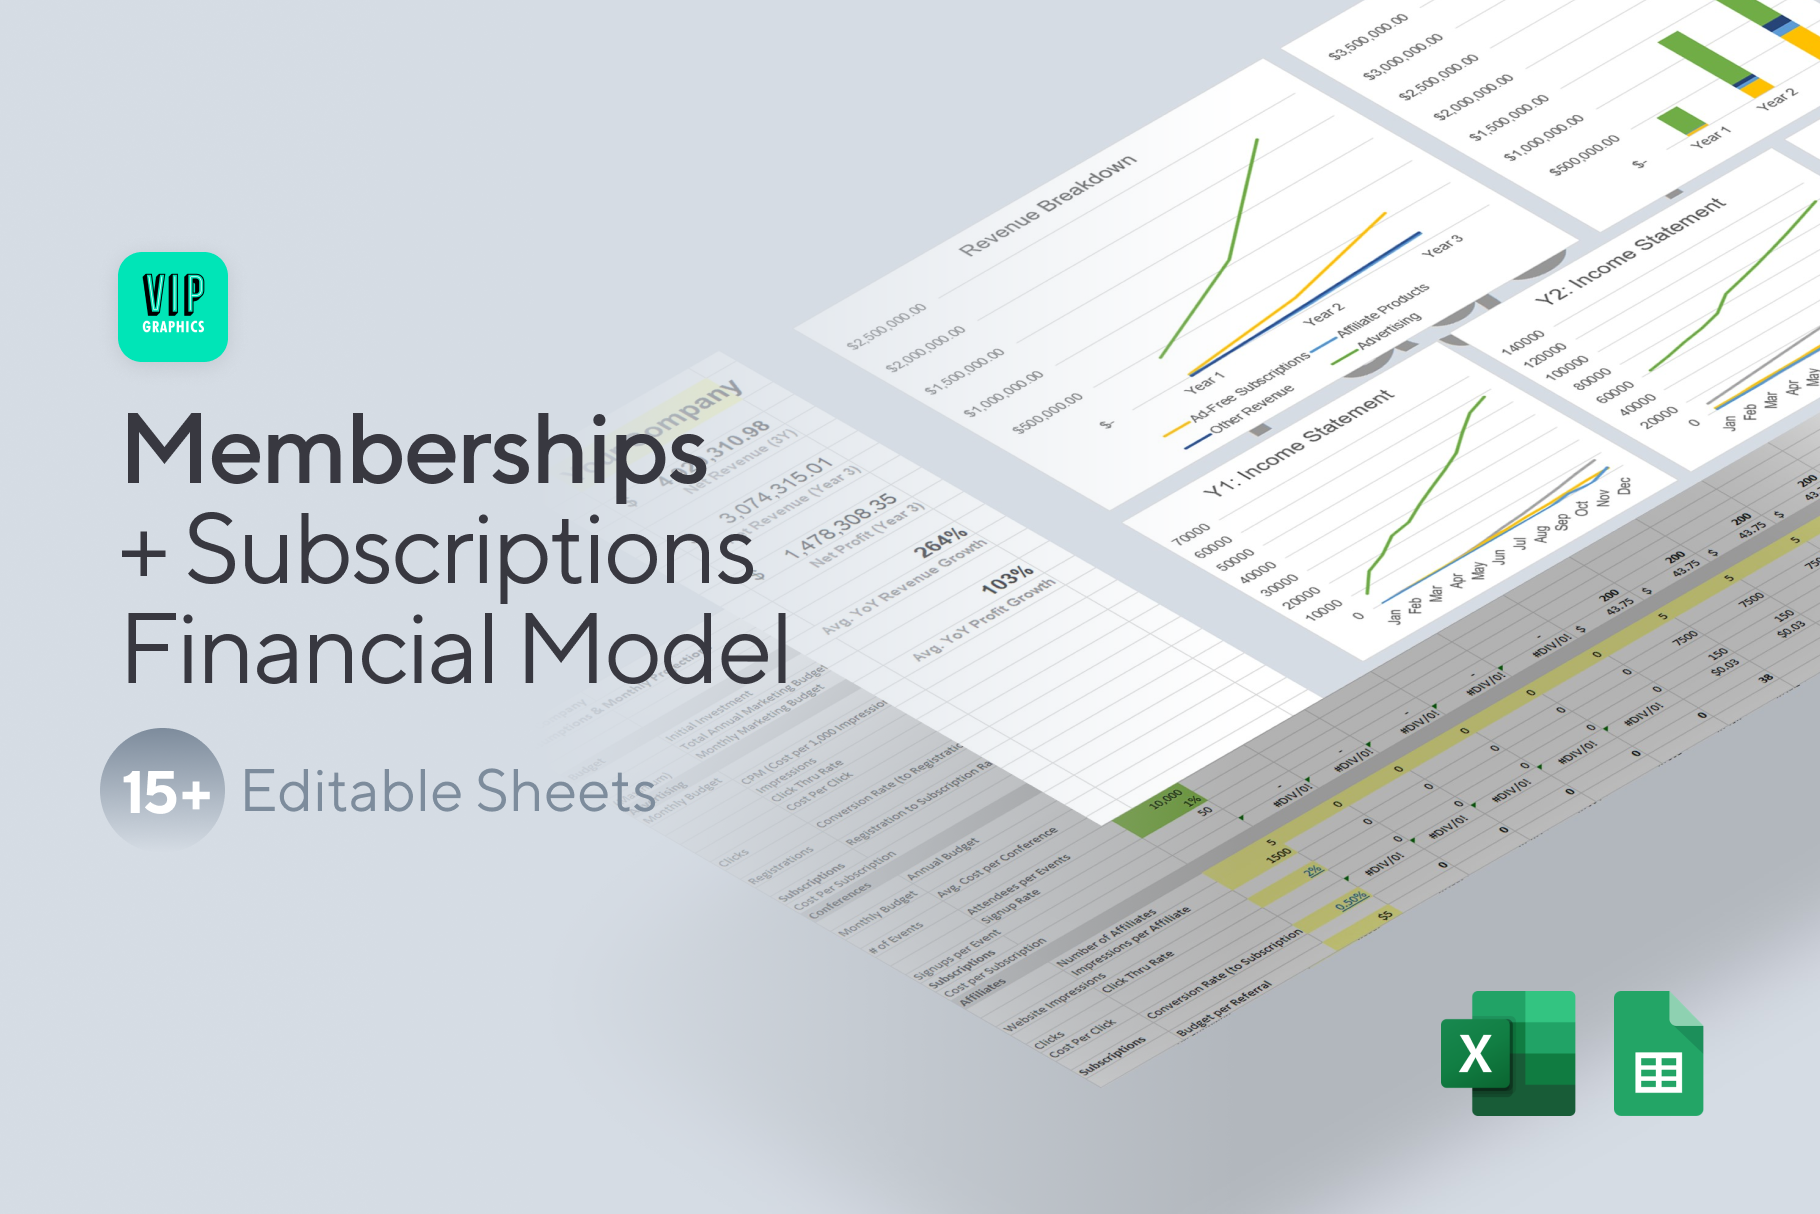 Memberships & Subscriptions Financial Model Template for Excel & Google Sheets